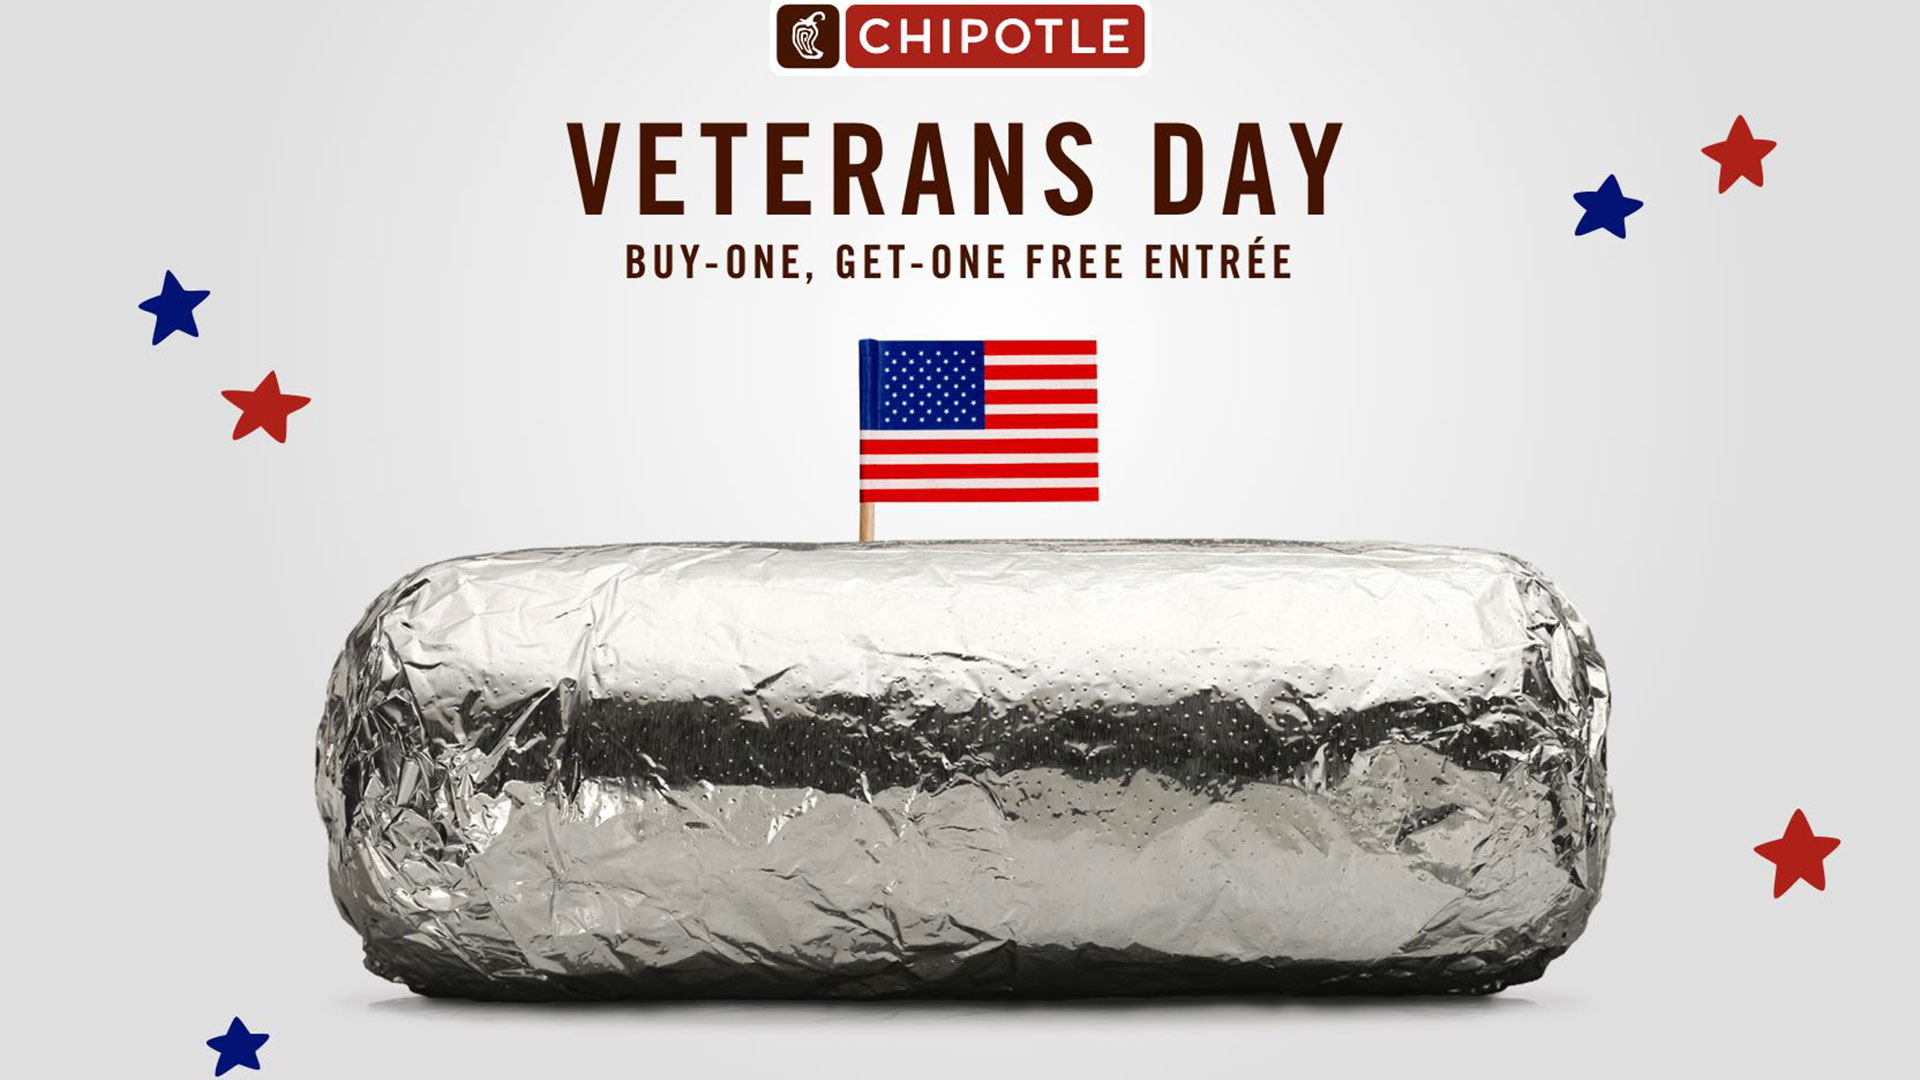 where can veterans get a free meal